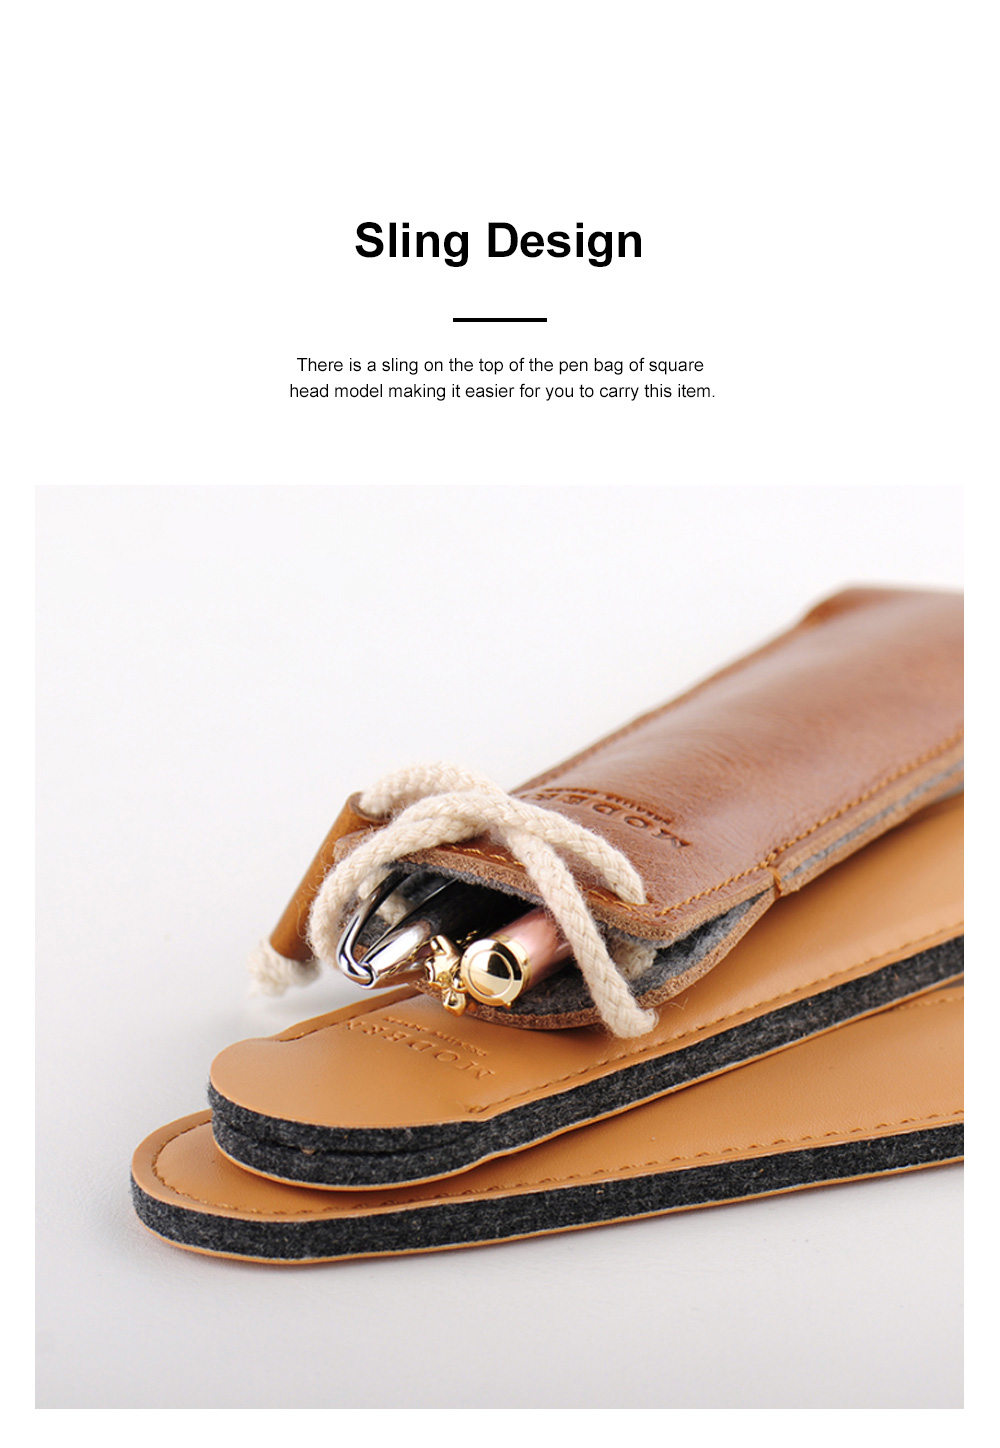 Minimalist Vintage Business Tough Soft Leather Pen Bag Pencil Case with Delicate Stitching Smooth Wool Felt Lining 3